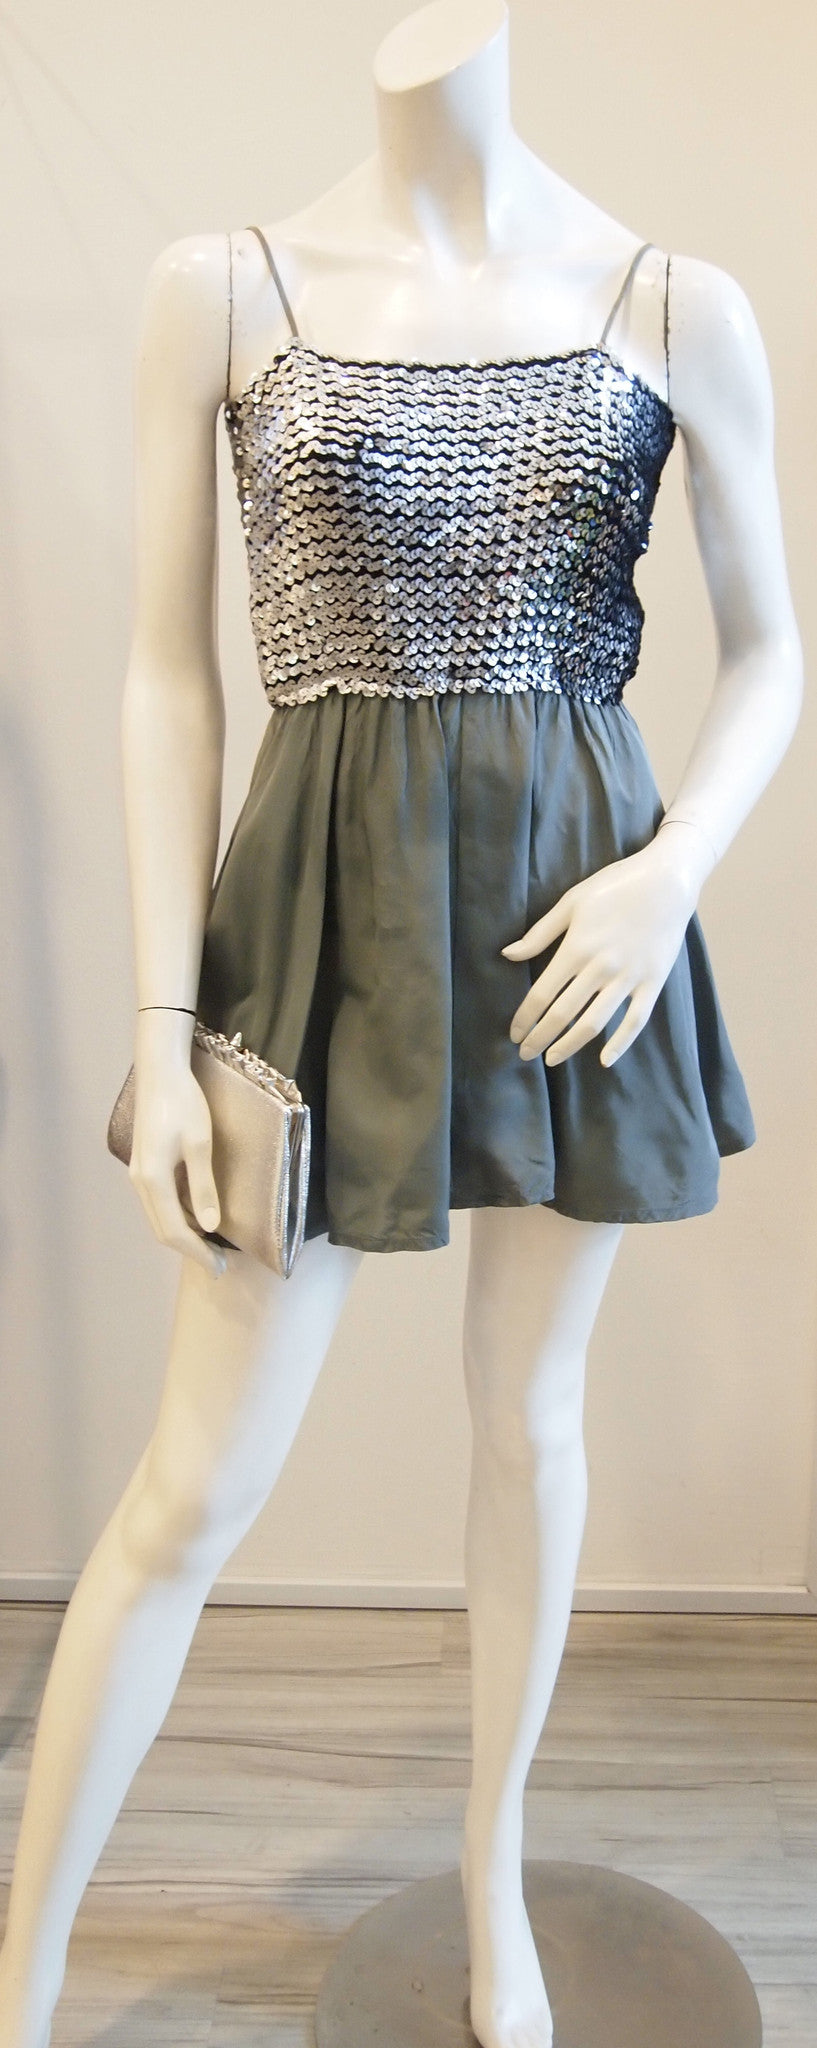 Silver sequin top and grey skirt